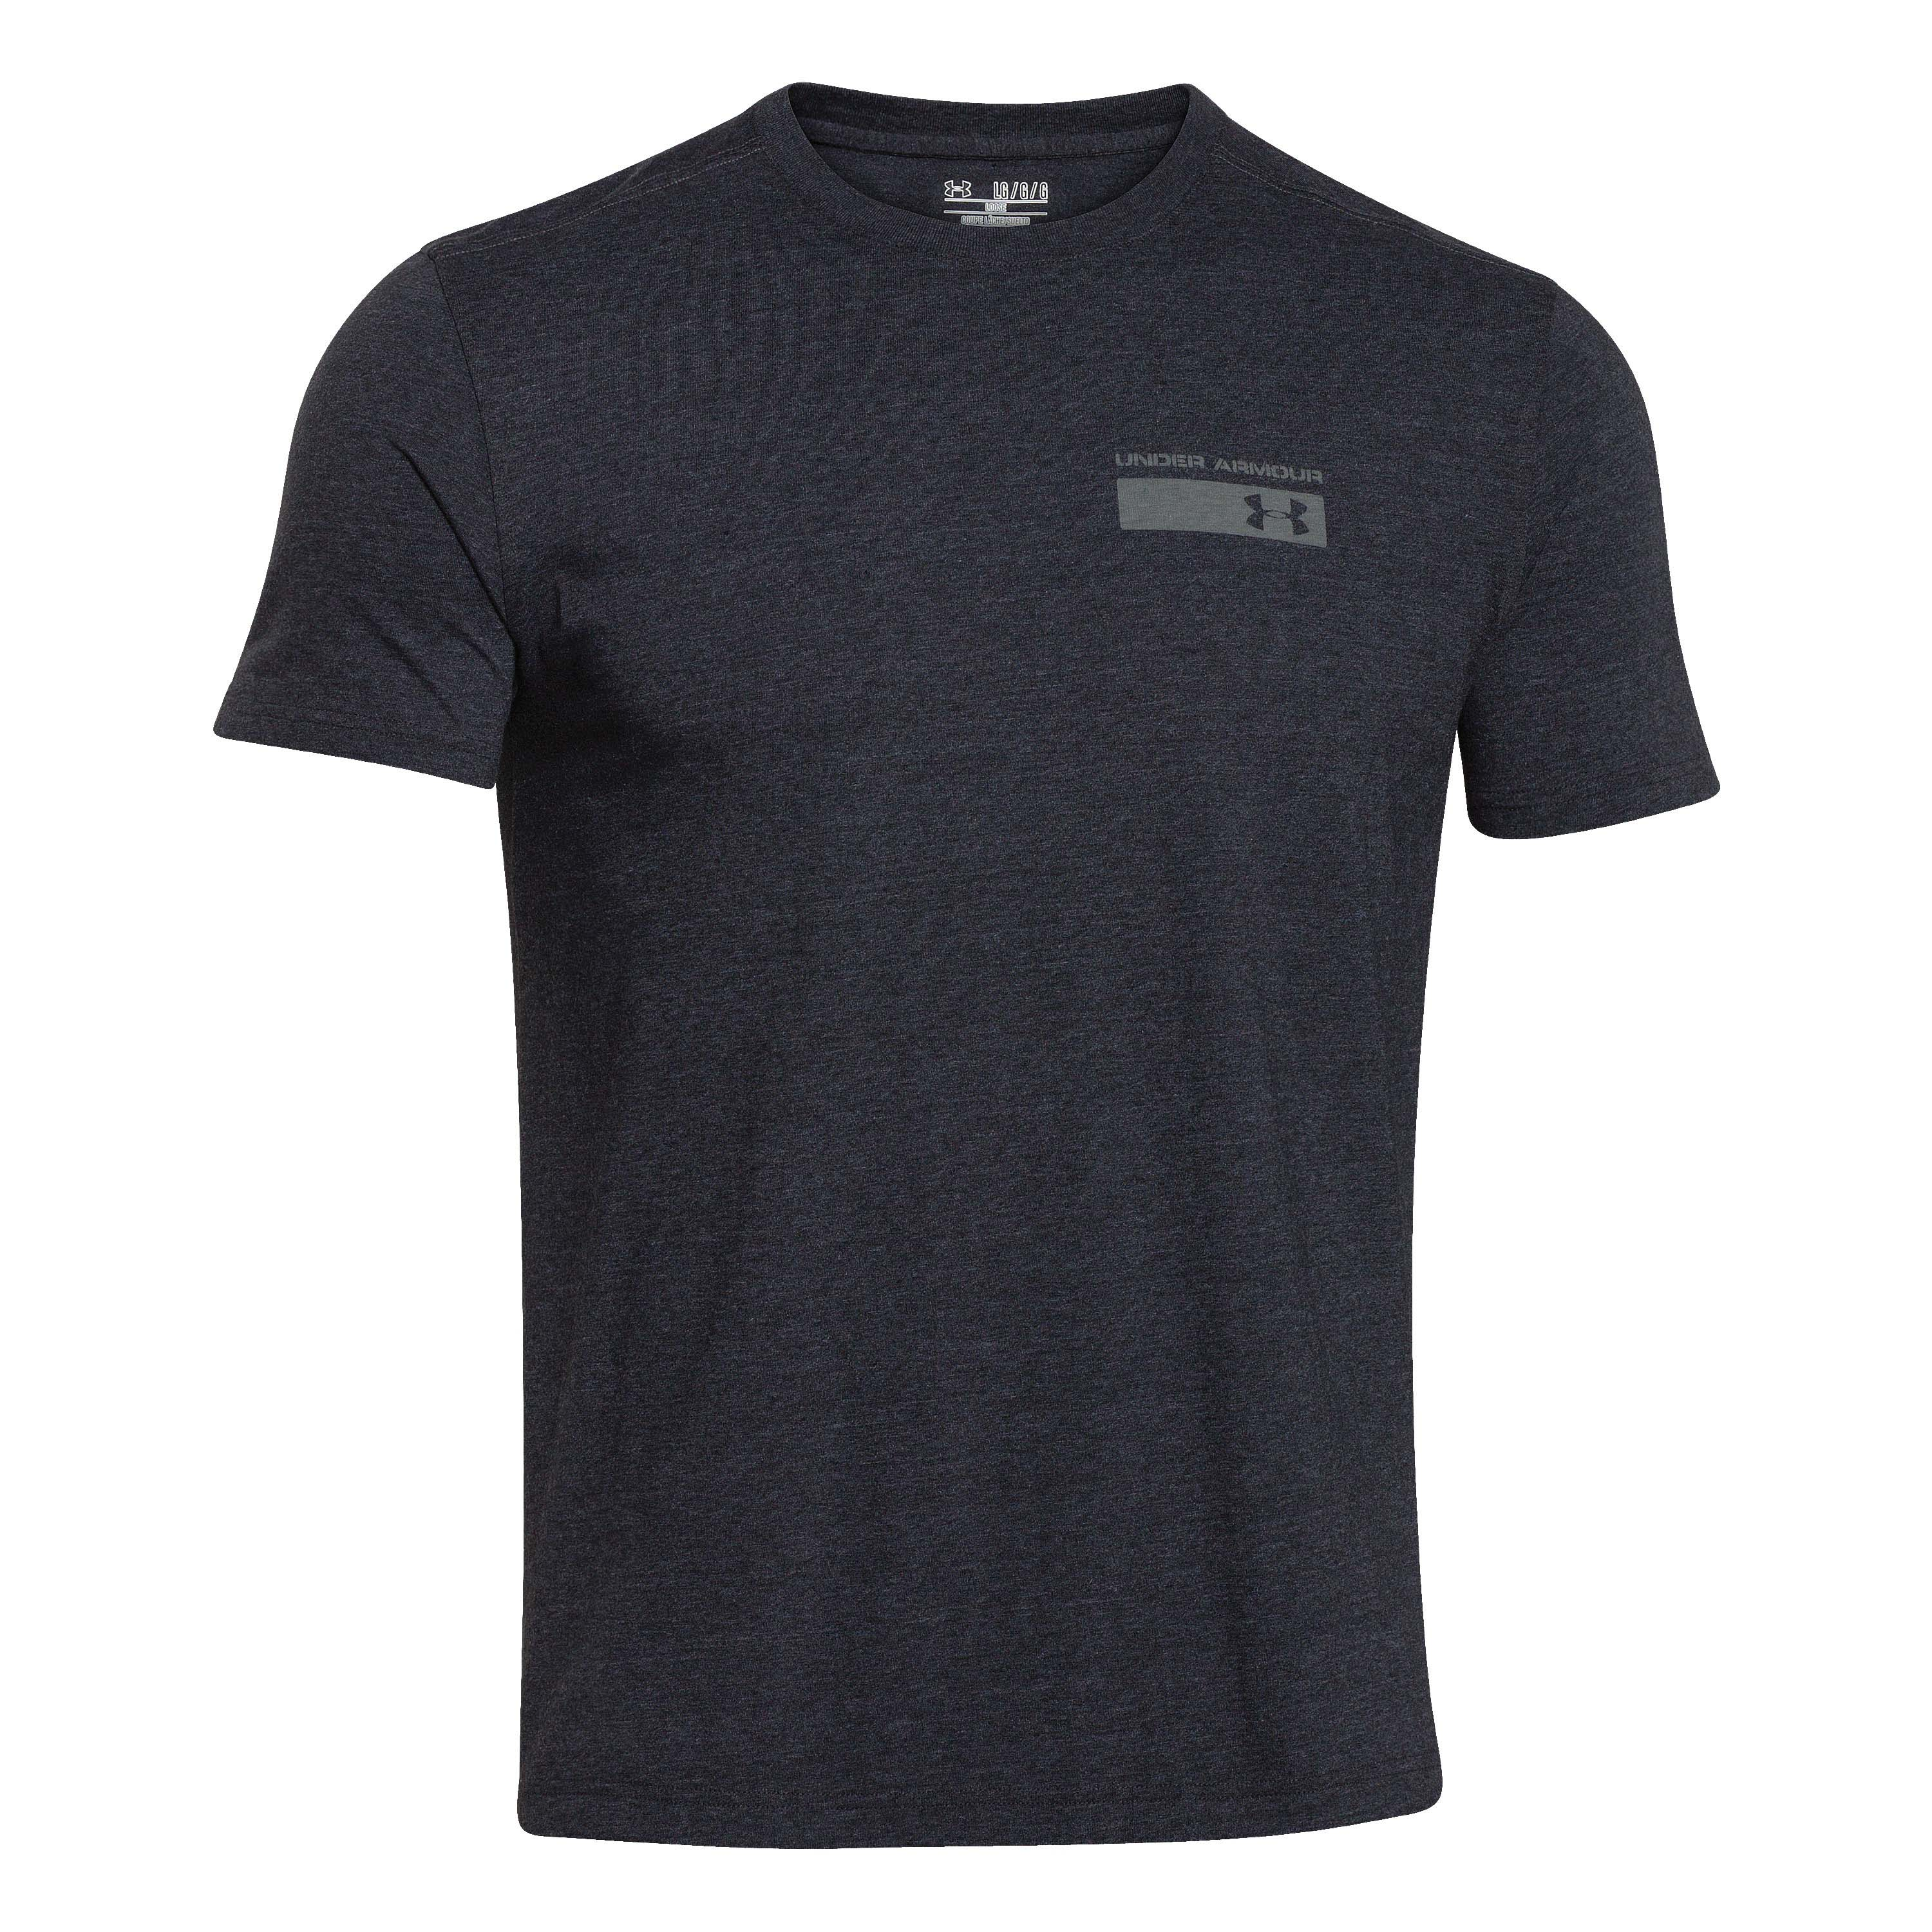 Under Armour Shirt Military Issue schwarz